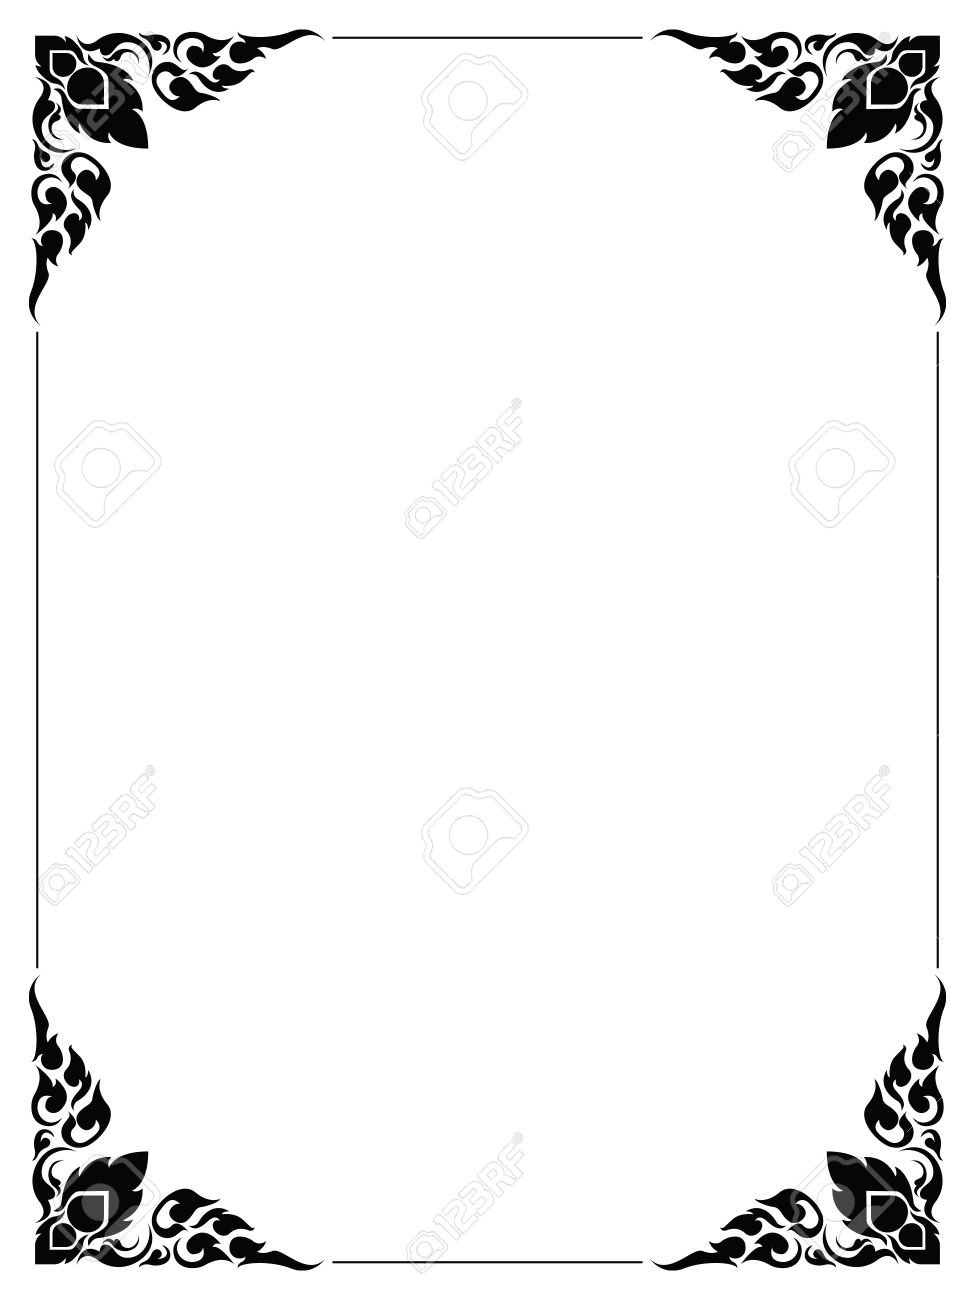 Frame Artistic Of Line Thai On White Royalty Free Cliparts, Vectors ...